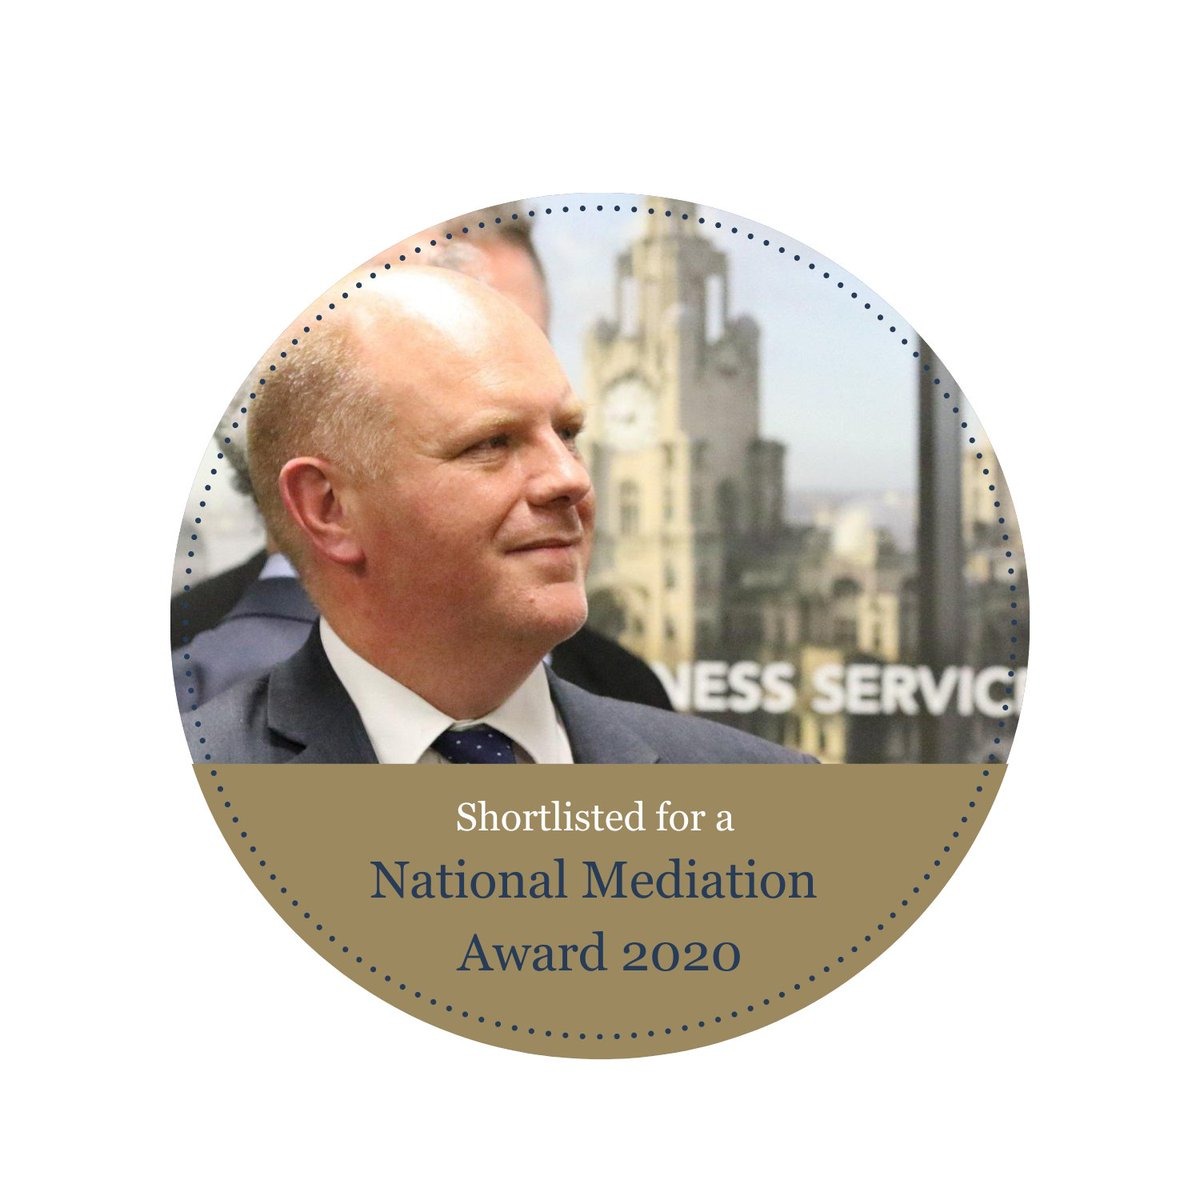 We were delighted to get a chance to sit down with one of our members @GregoryHuntADR for a chat about his experience in #onlinemediation.   https://t.co/VKABZGdGWS     #ODR #ADR   @huntadrltd @michael_bready @AARONJAMESMOOR1 @JohnKeersBL https://t.co/HDUaWPR1rg